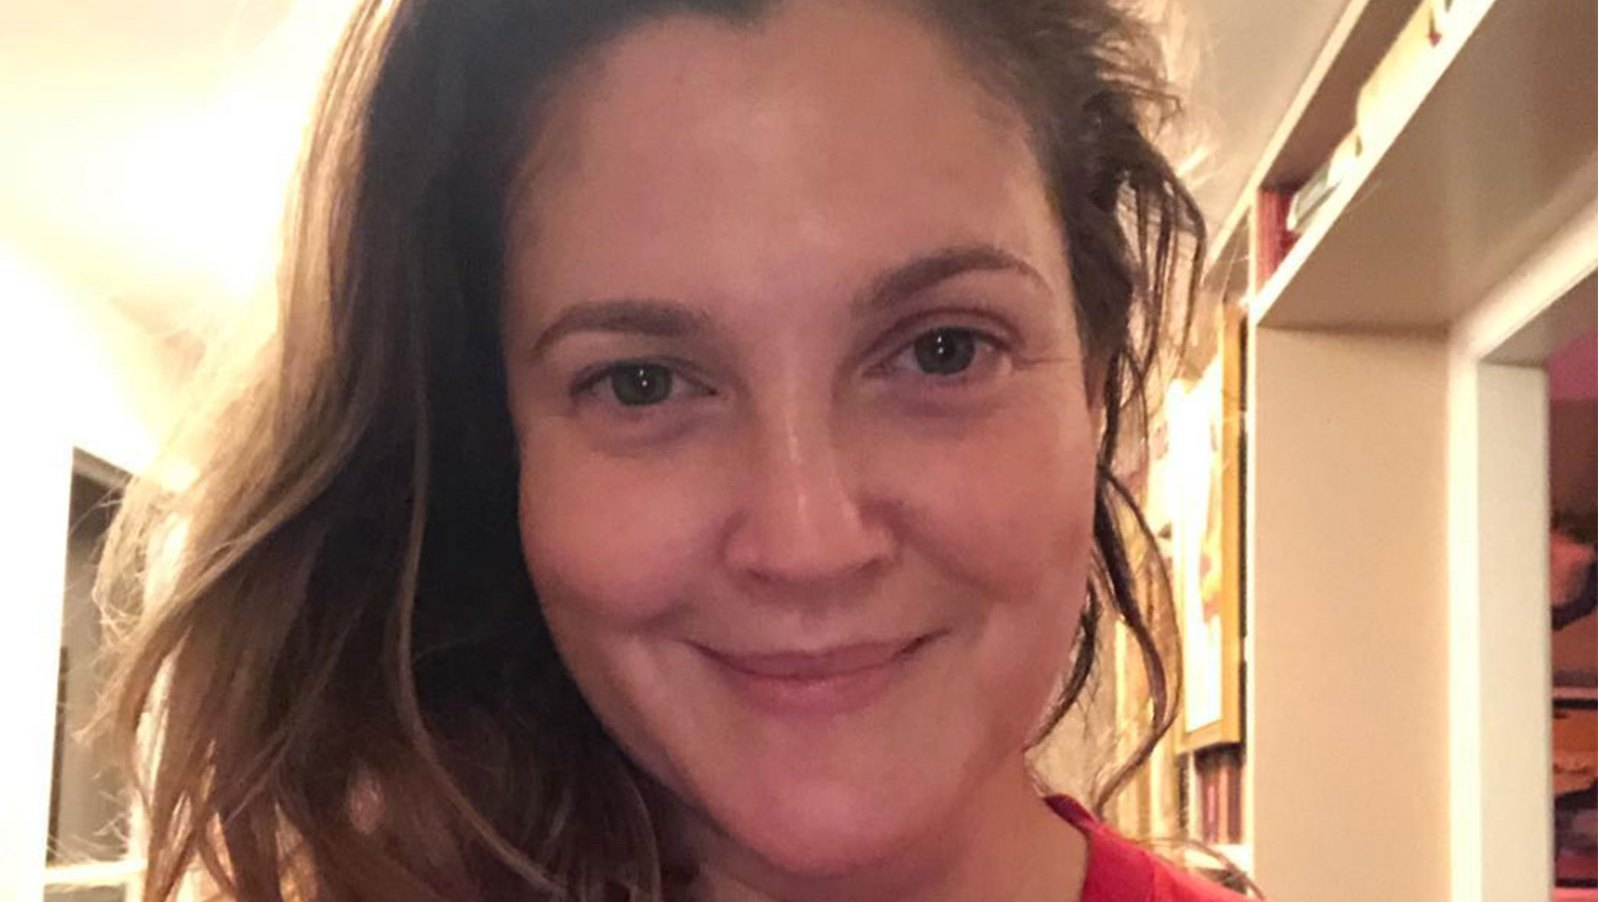 Drew Barrymore, 44, Gives One of the All-Time Best No-Makeup Celeb Selfies